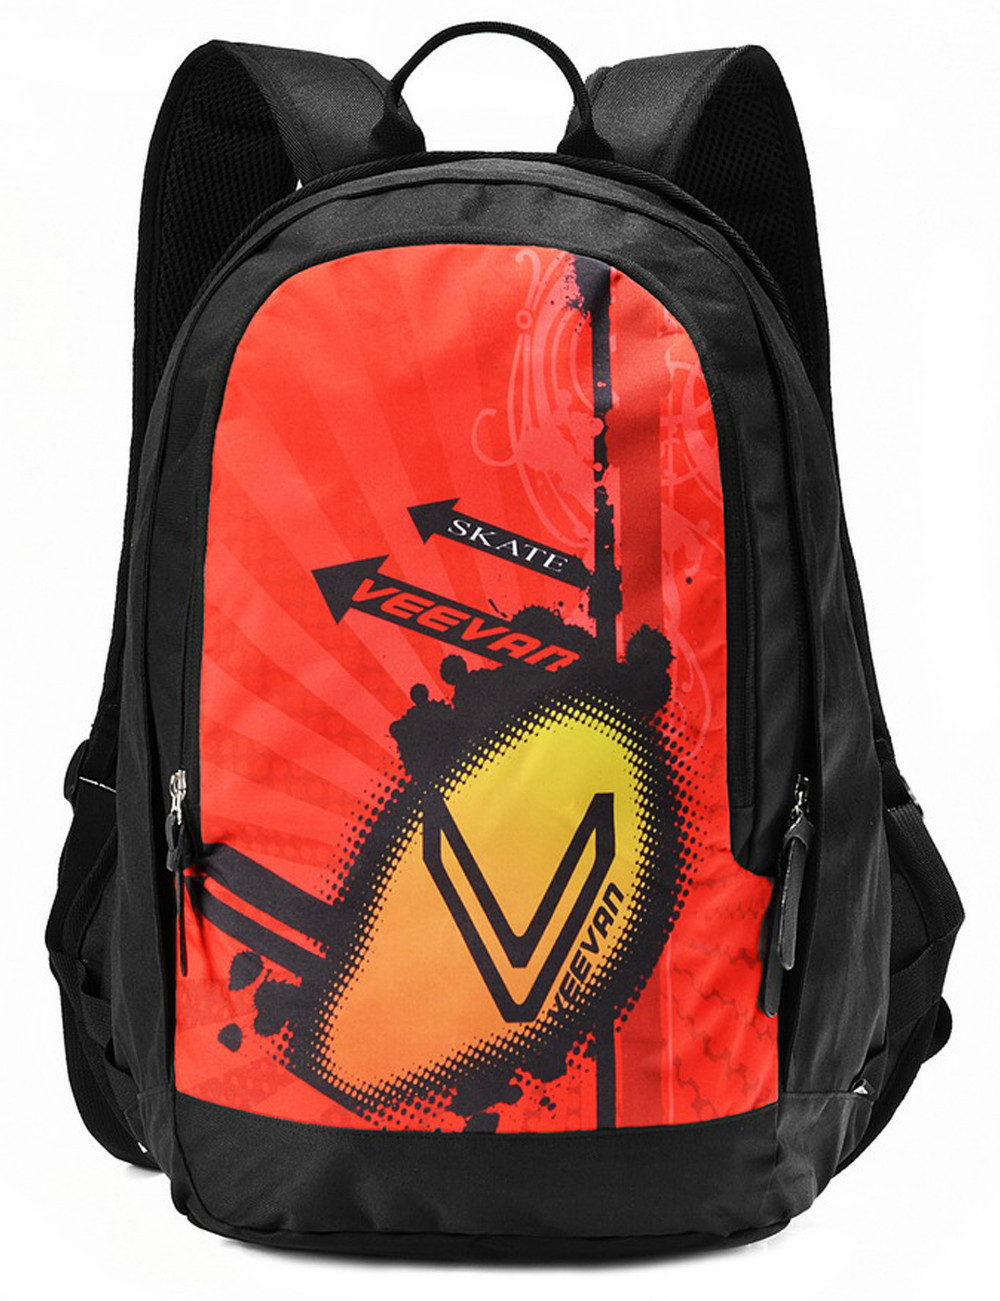 School Backpack Companies | Crazy Backpacks